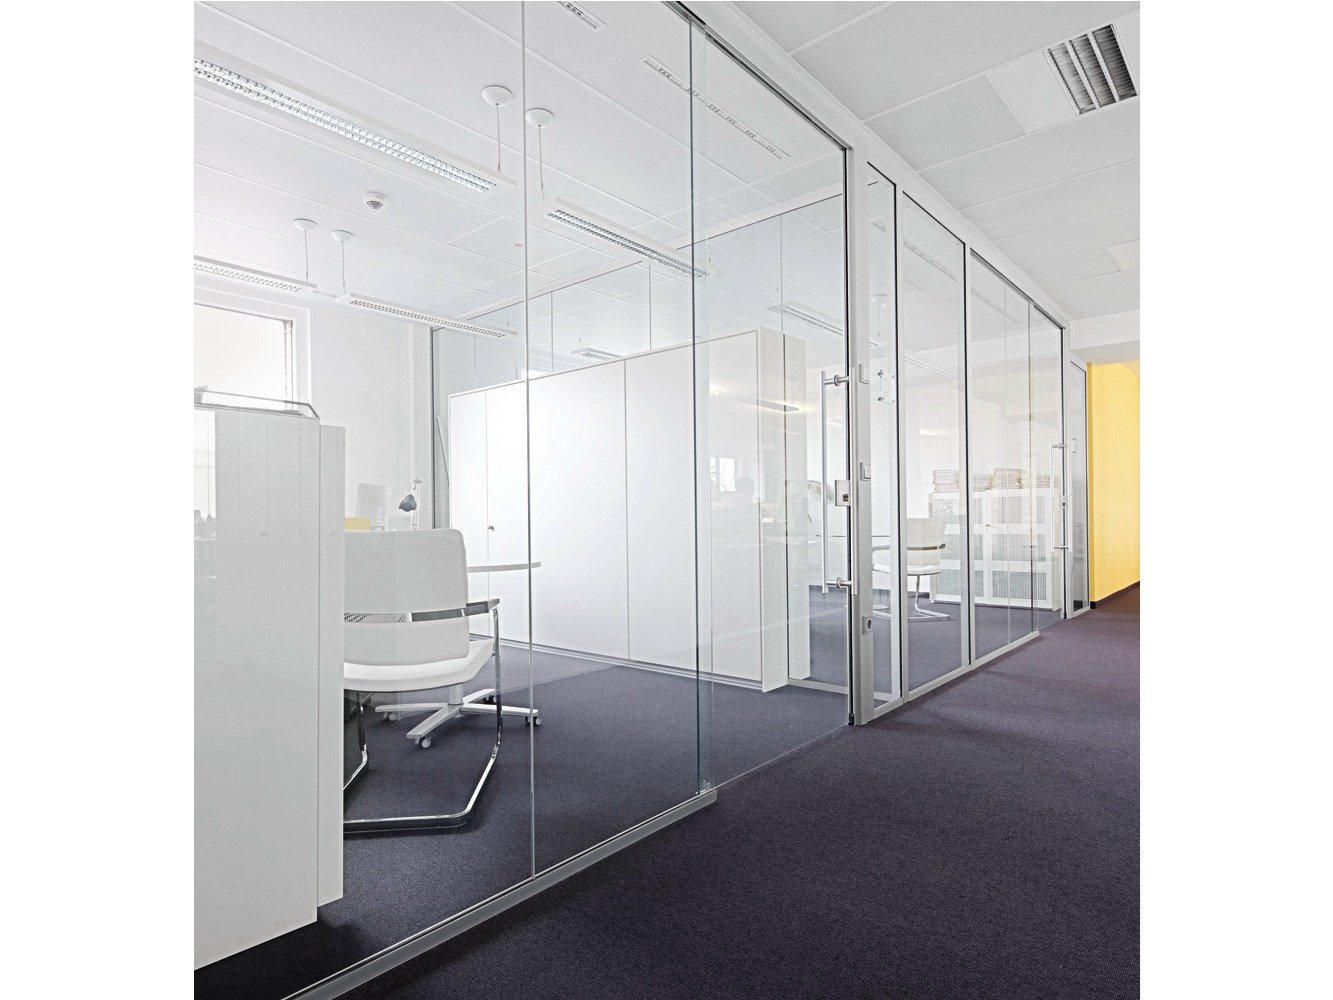 Sliding glass office partition h68 by k nig neurath Sliding glass partitions home